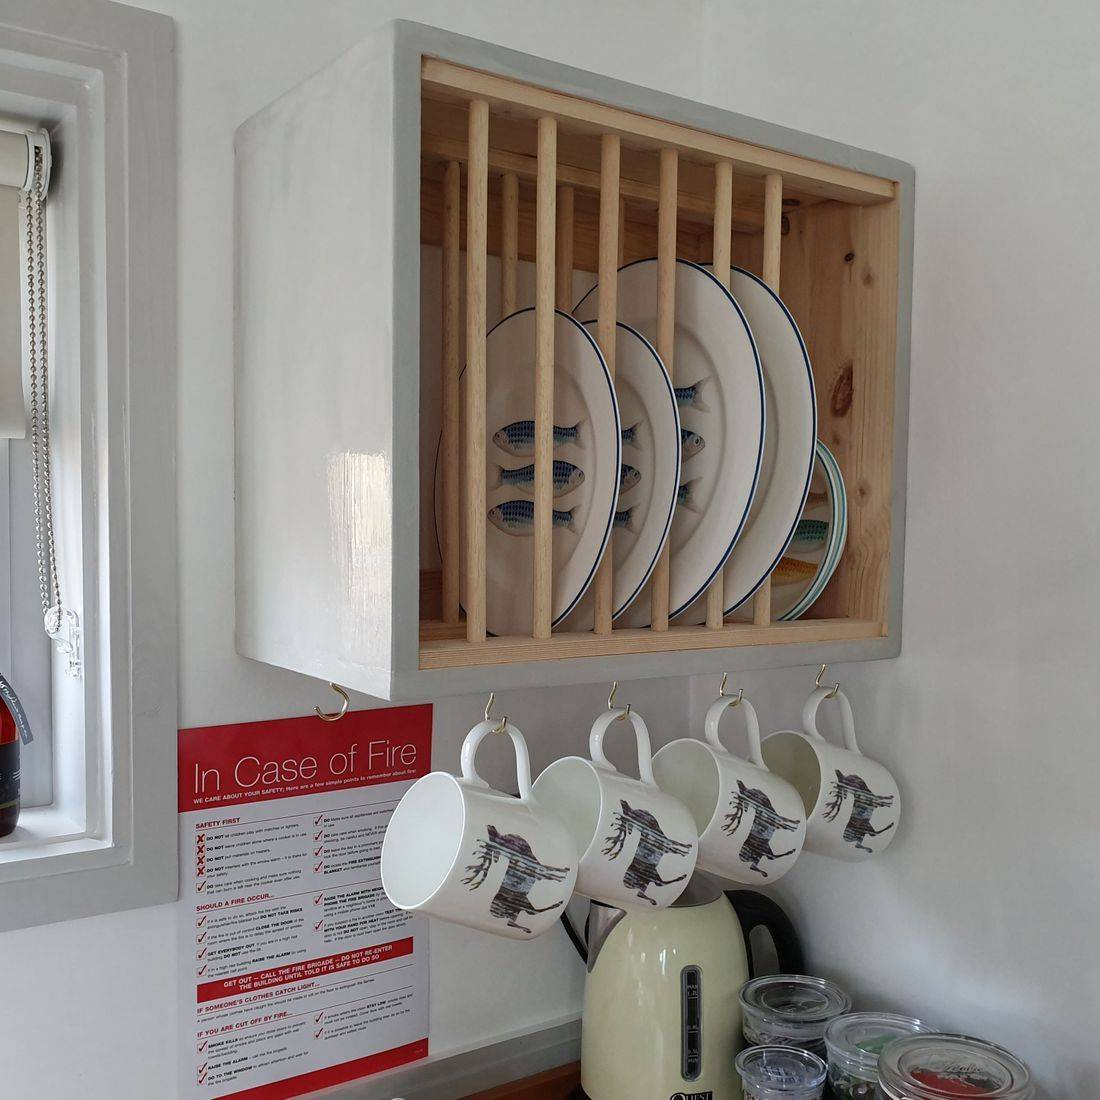 Quirky Plate Rack, space saving storage options